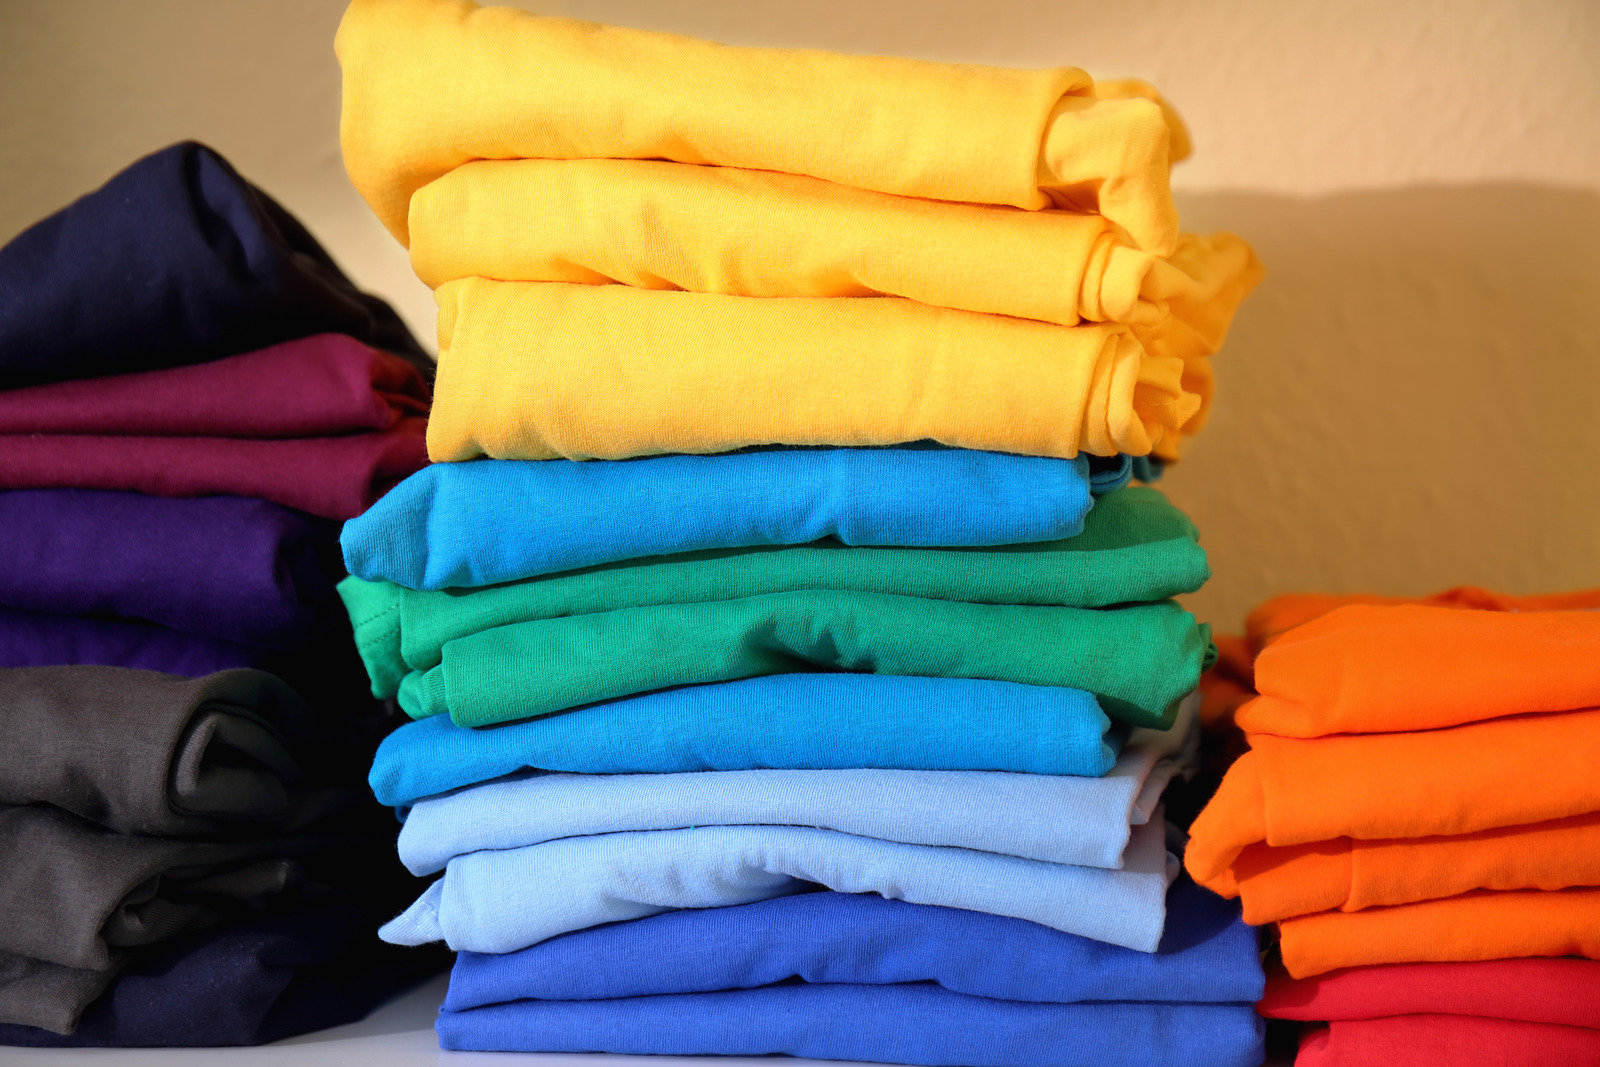 Stacks of Colorful T-Shirts on Shelf